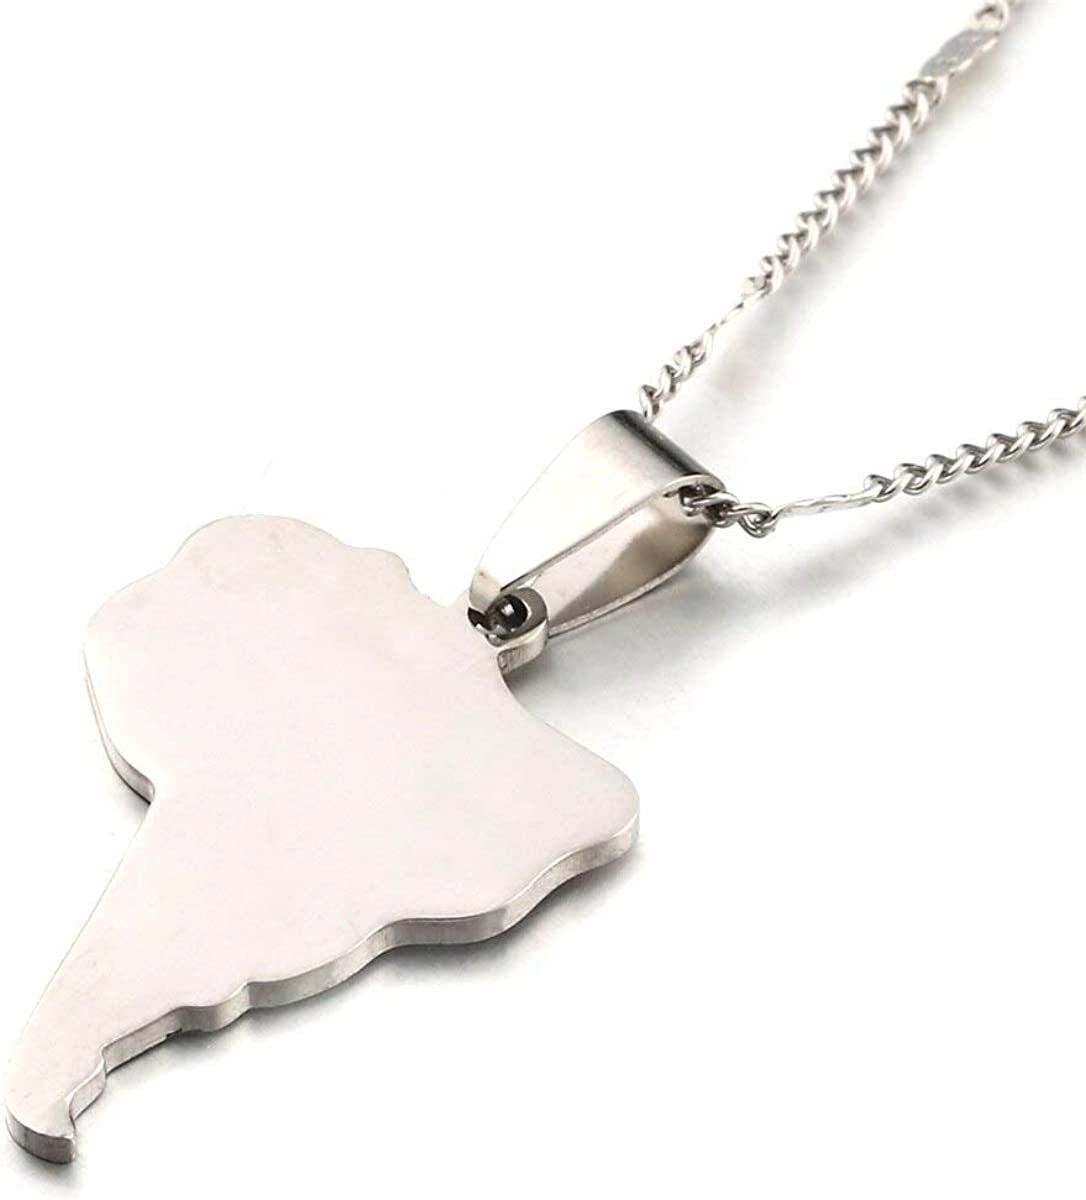 Stainless Steel Map Of South America Necklace Pendants Trendy Chain Jewelry